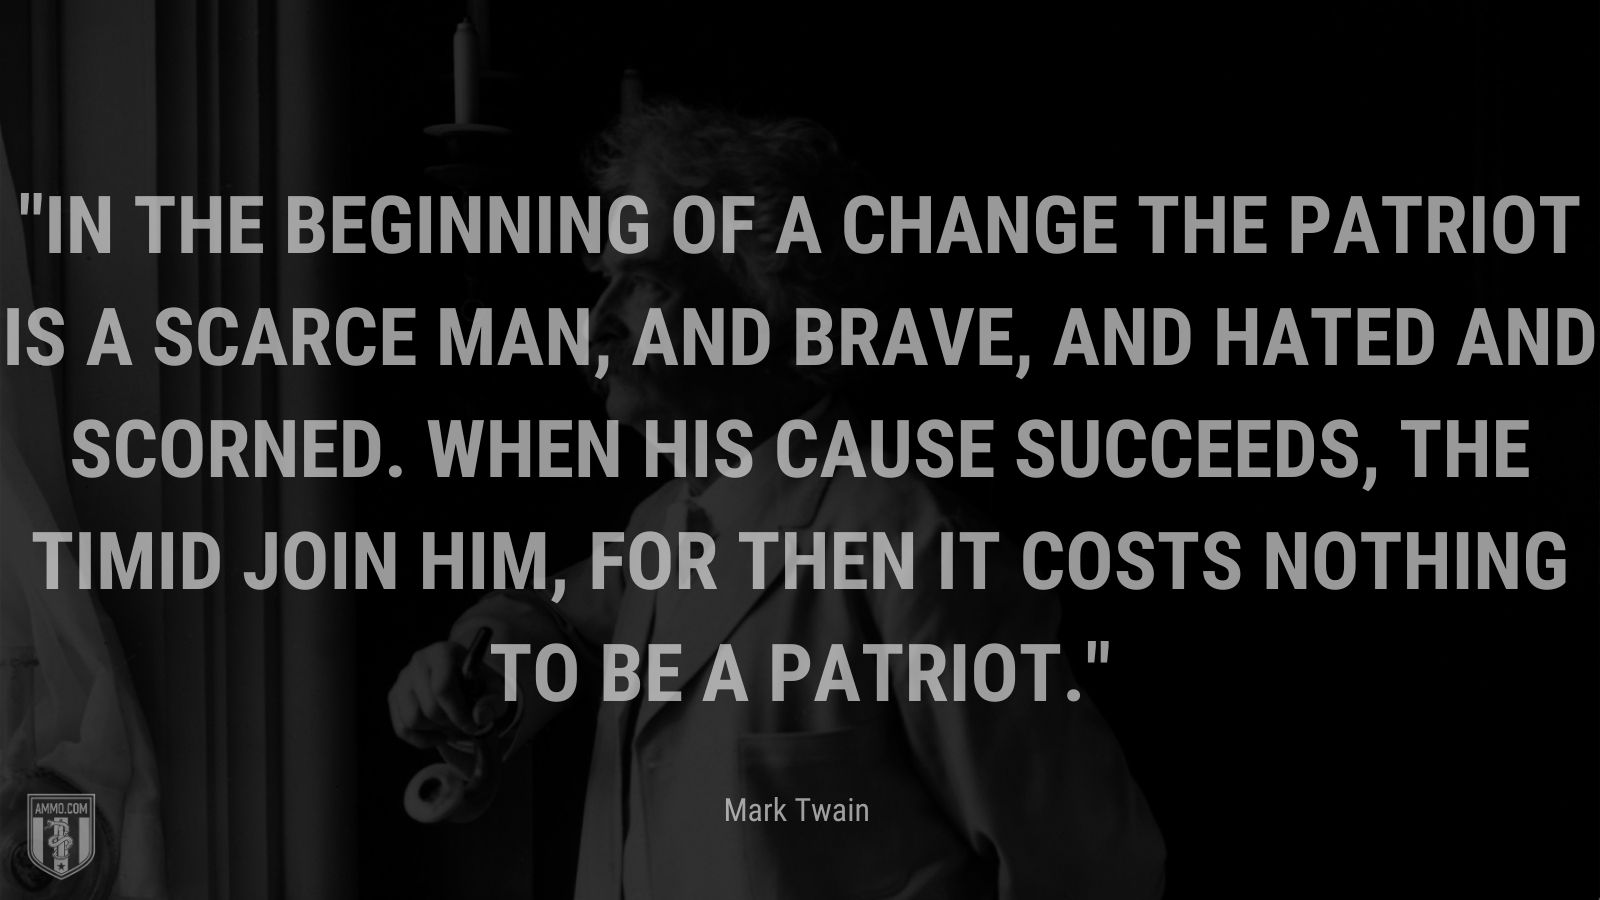 """""""In the beginning of a change the patriot is a scarce man, and brave, and hated and scorned. When his cause succeeds, the timid join him, for then it costs nothing to be a patriot. - Mark Twain"""